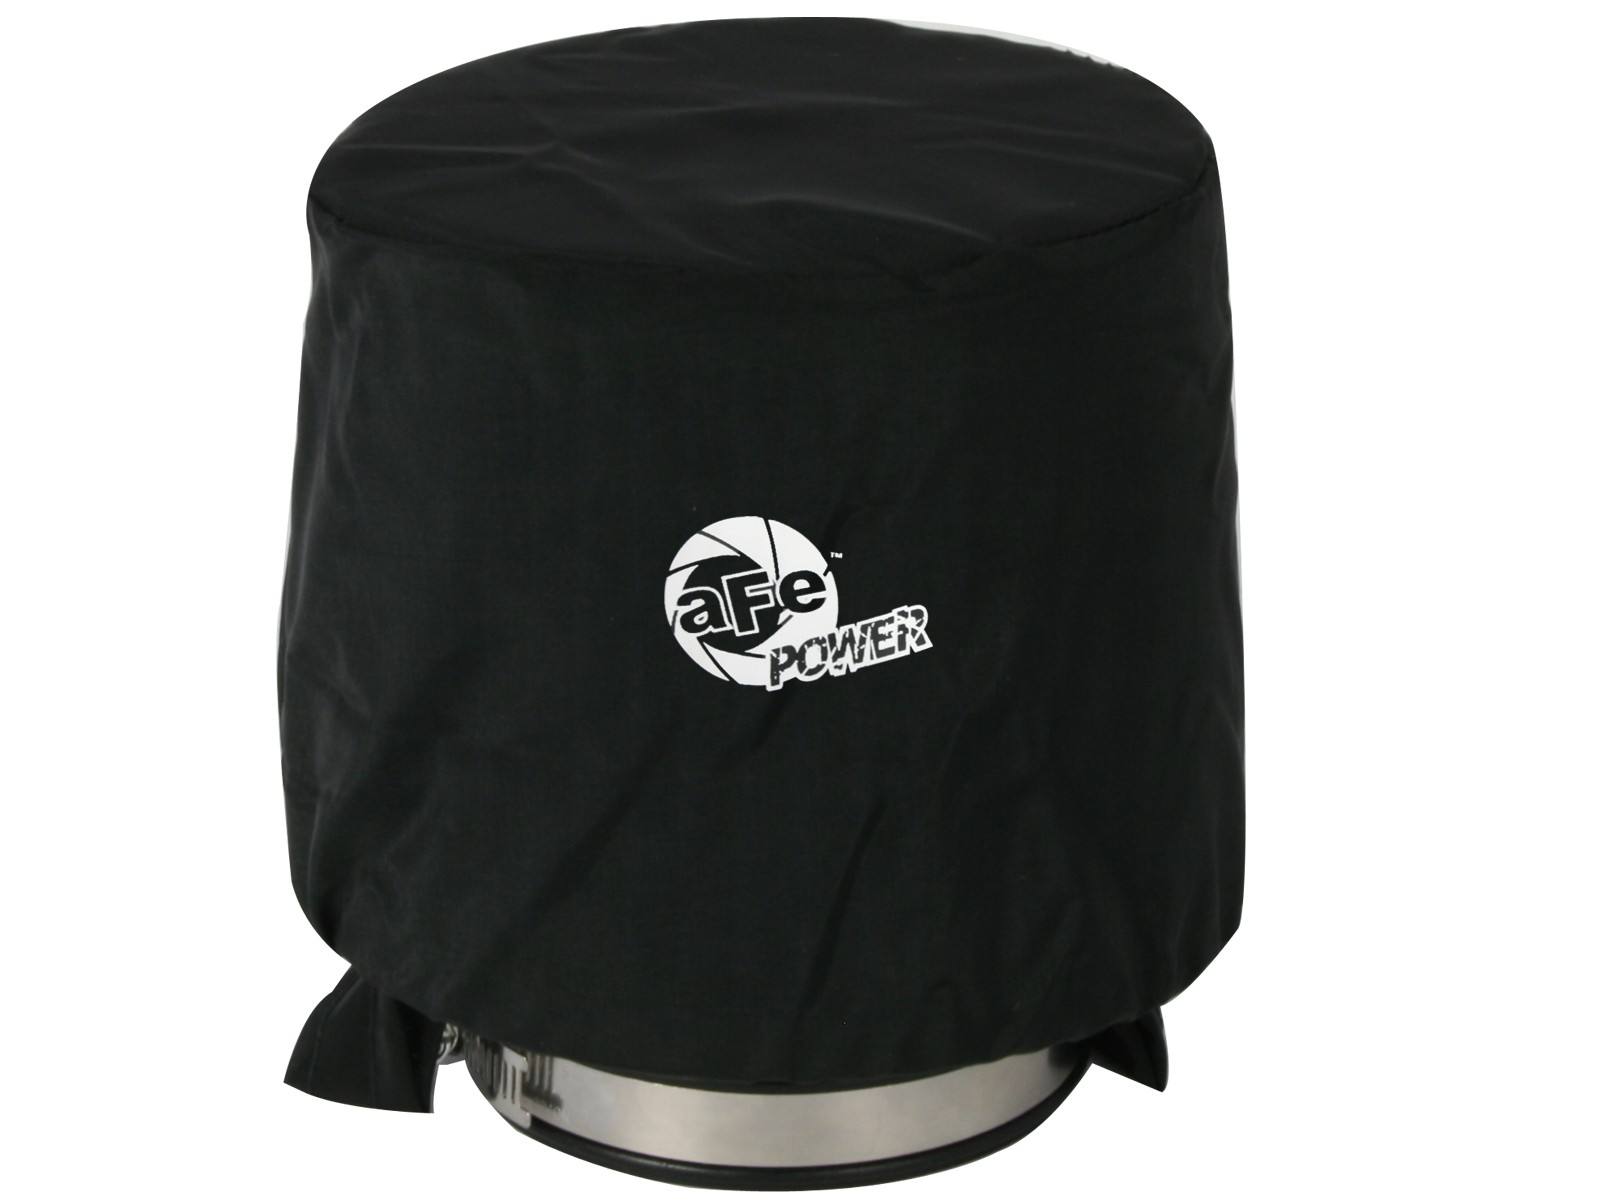 aFe POWER 28-10103 Magnum SHIELD Pre-Filters